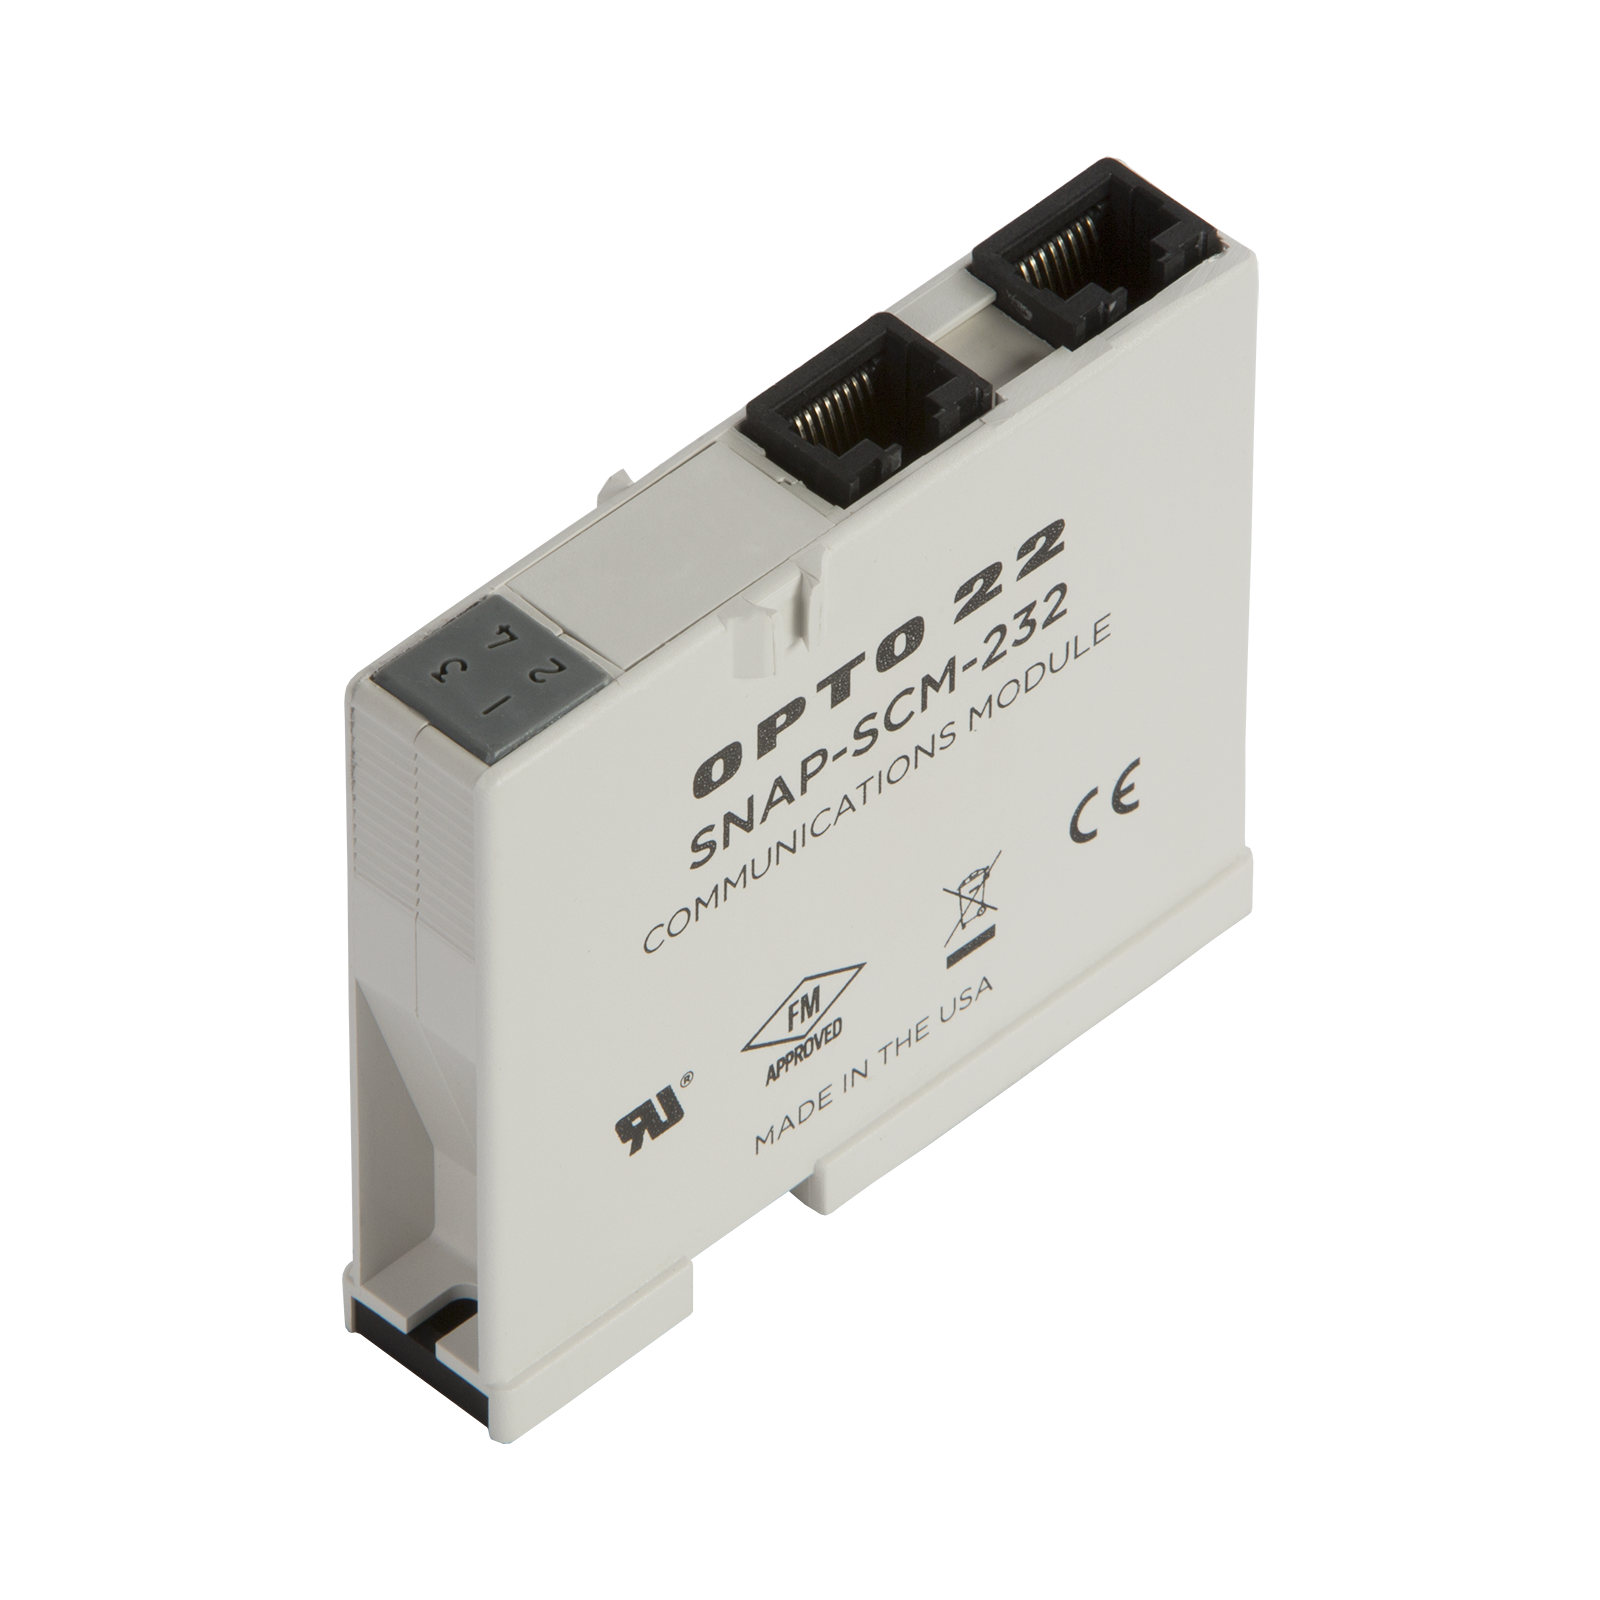 Opto22 Snap Scm 232 2 Ch Rs Serial Communication Module To 485 Wiring Diagram Connector Previous